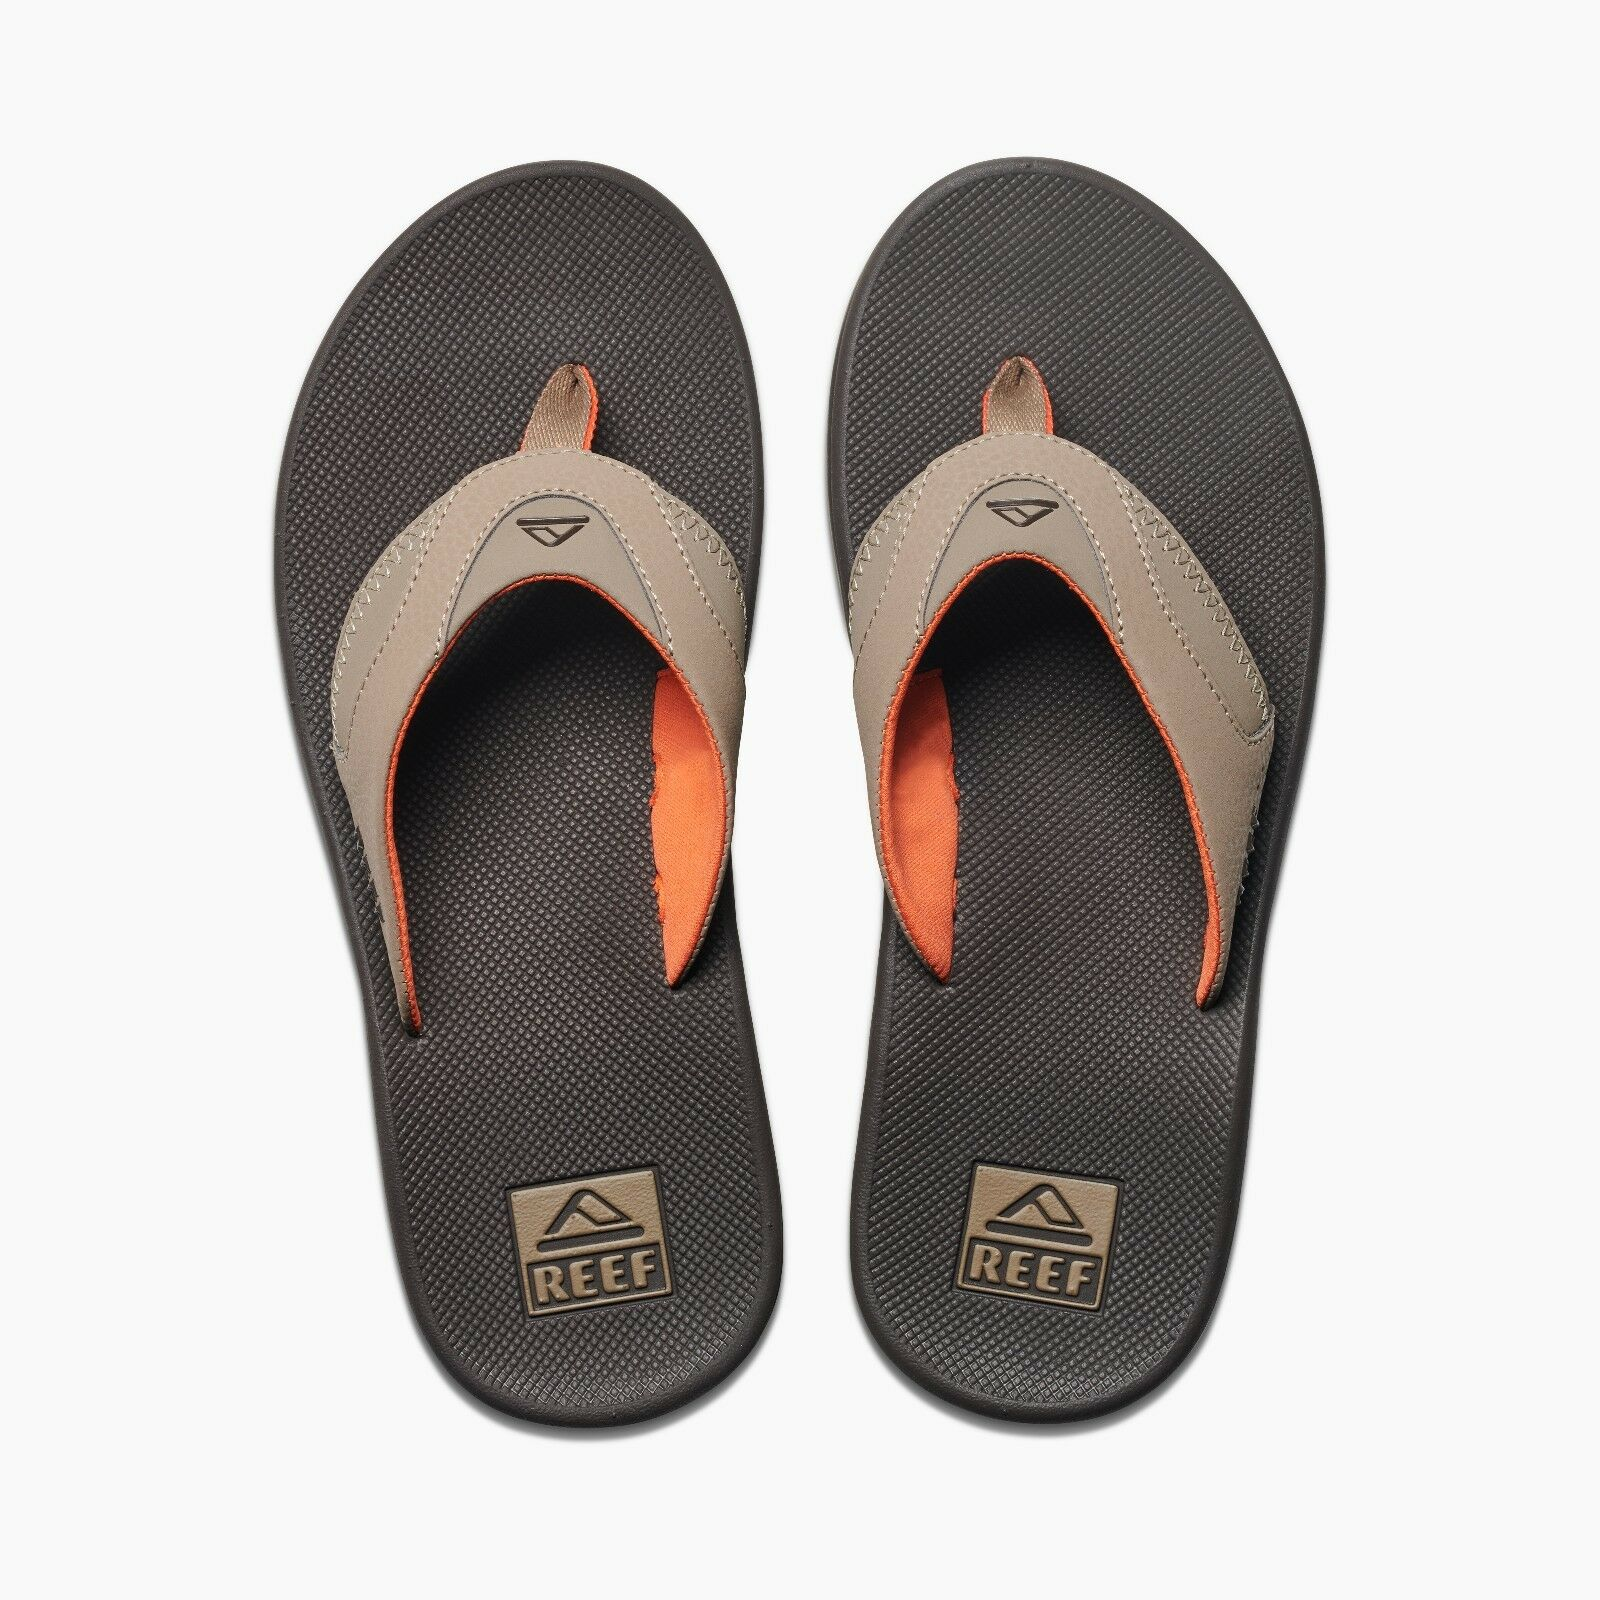 REEF MENS FLIP FLOPS.FANNING BROWN ARCH SUPPORT THONGS SANDALS SHOES 8S 26 BWO